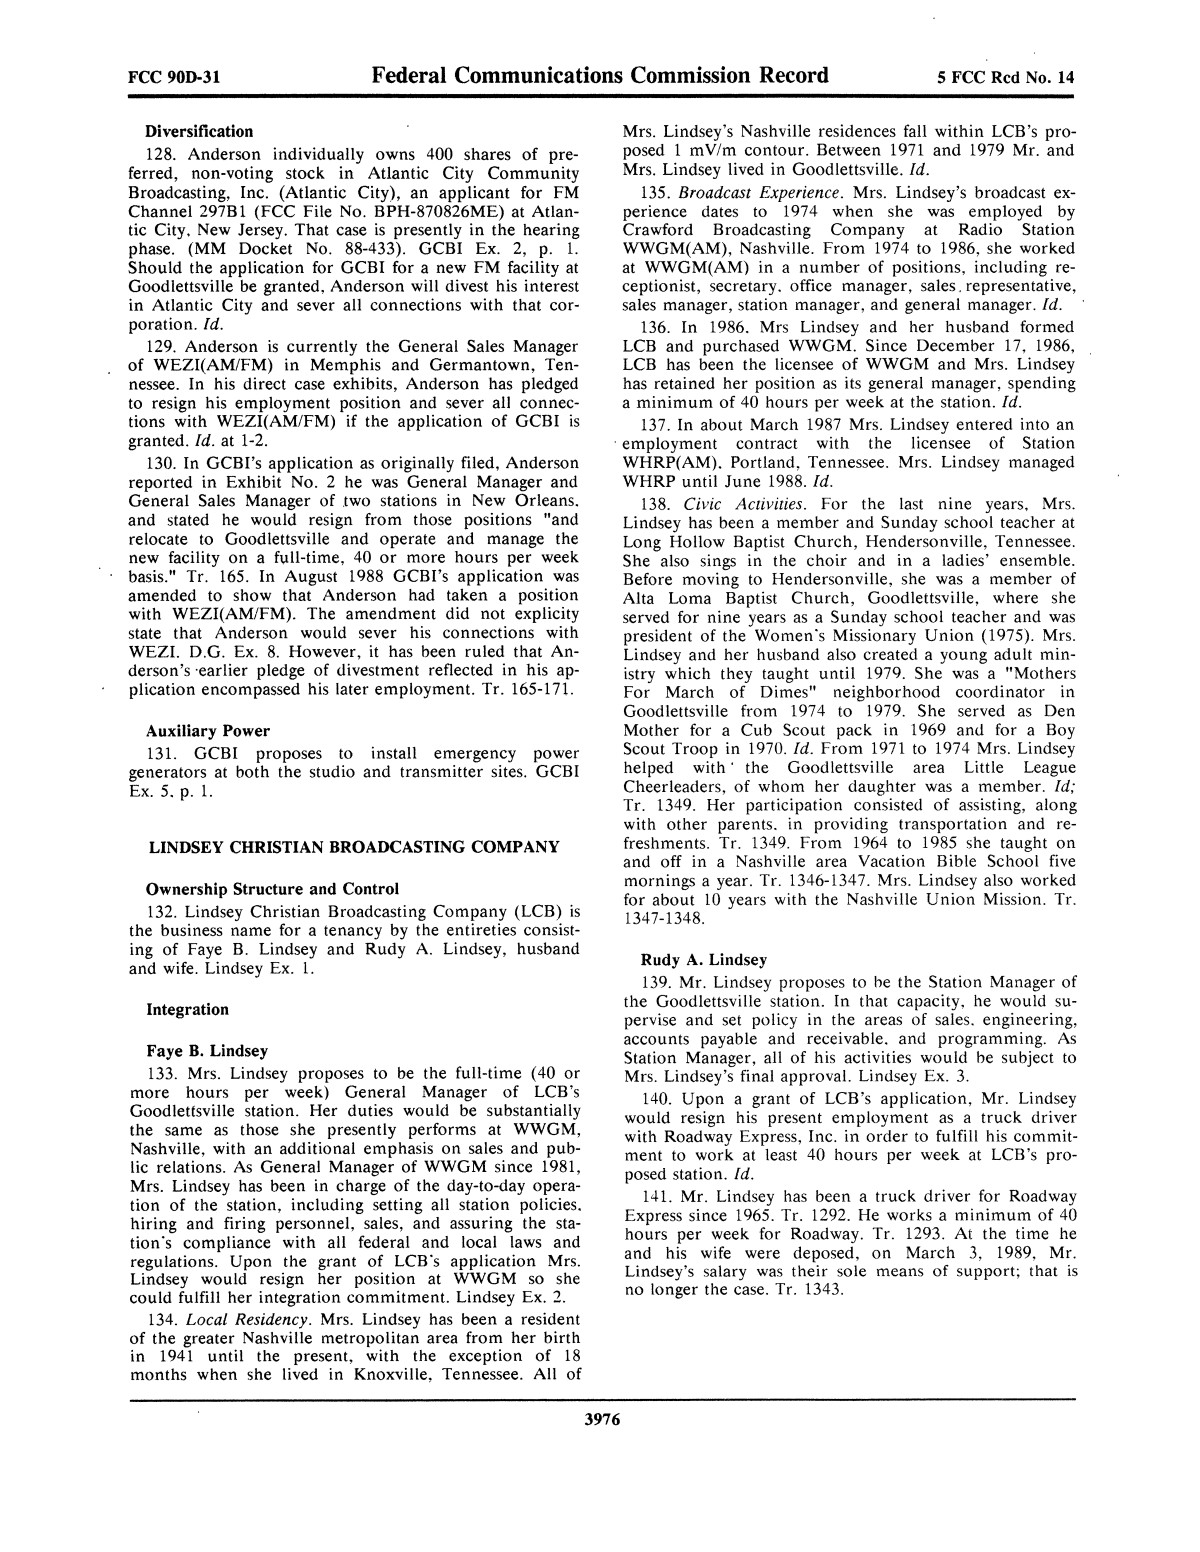 FCC Record, Volume 5, No. 14, Pages 3902 to 4380, July 2 - July 13, 1990                                                                                                      3976